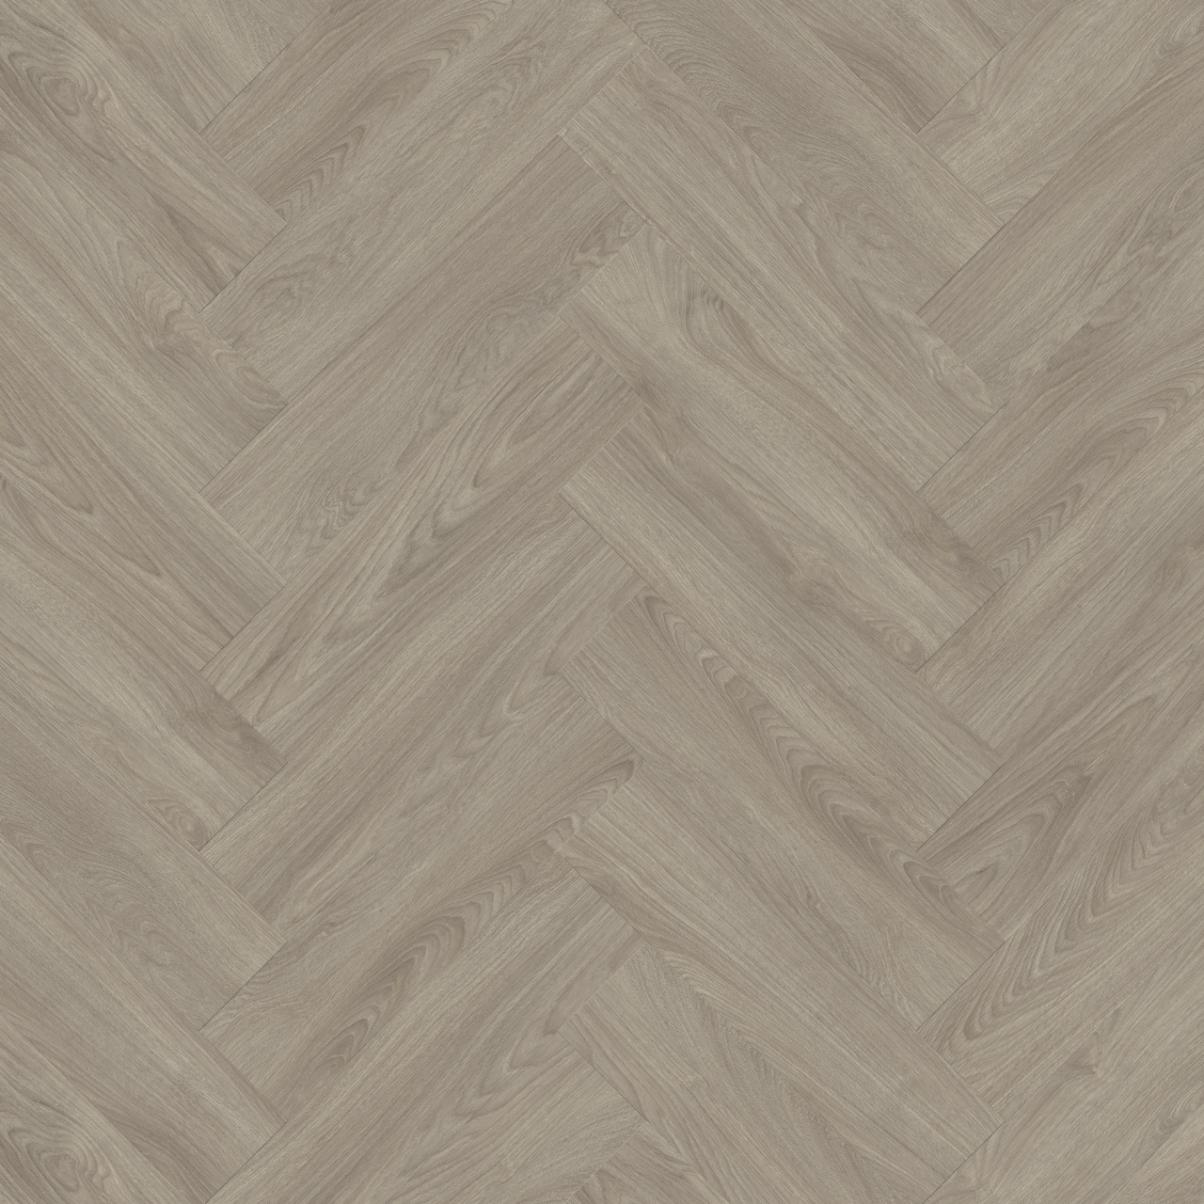 ПВХ  Модулео PARQUETRY SHORT Impress  51937 Laurel Oak (2,5мм-0,55мм)